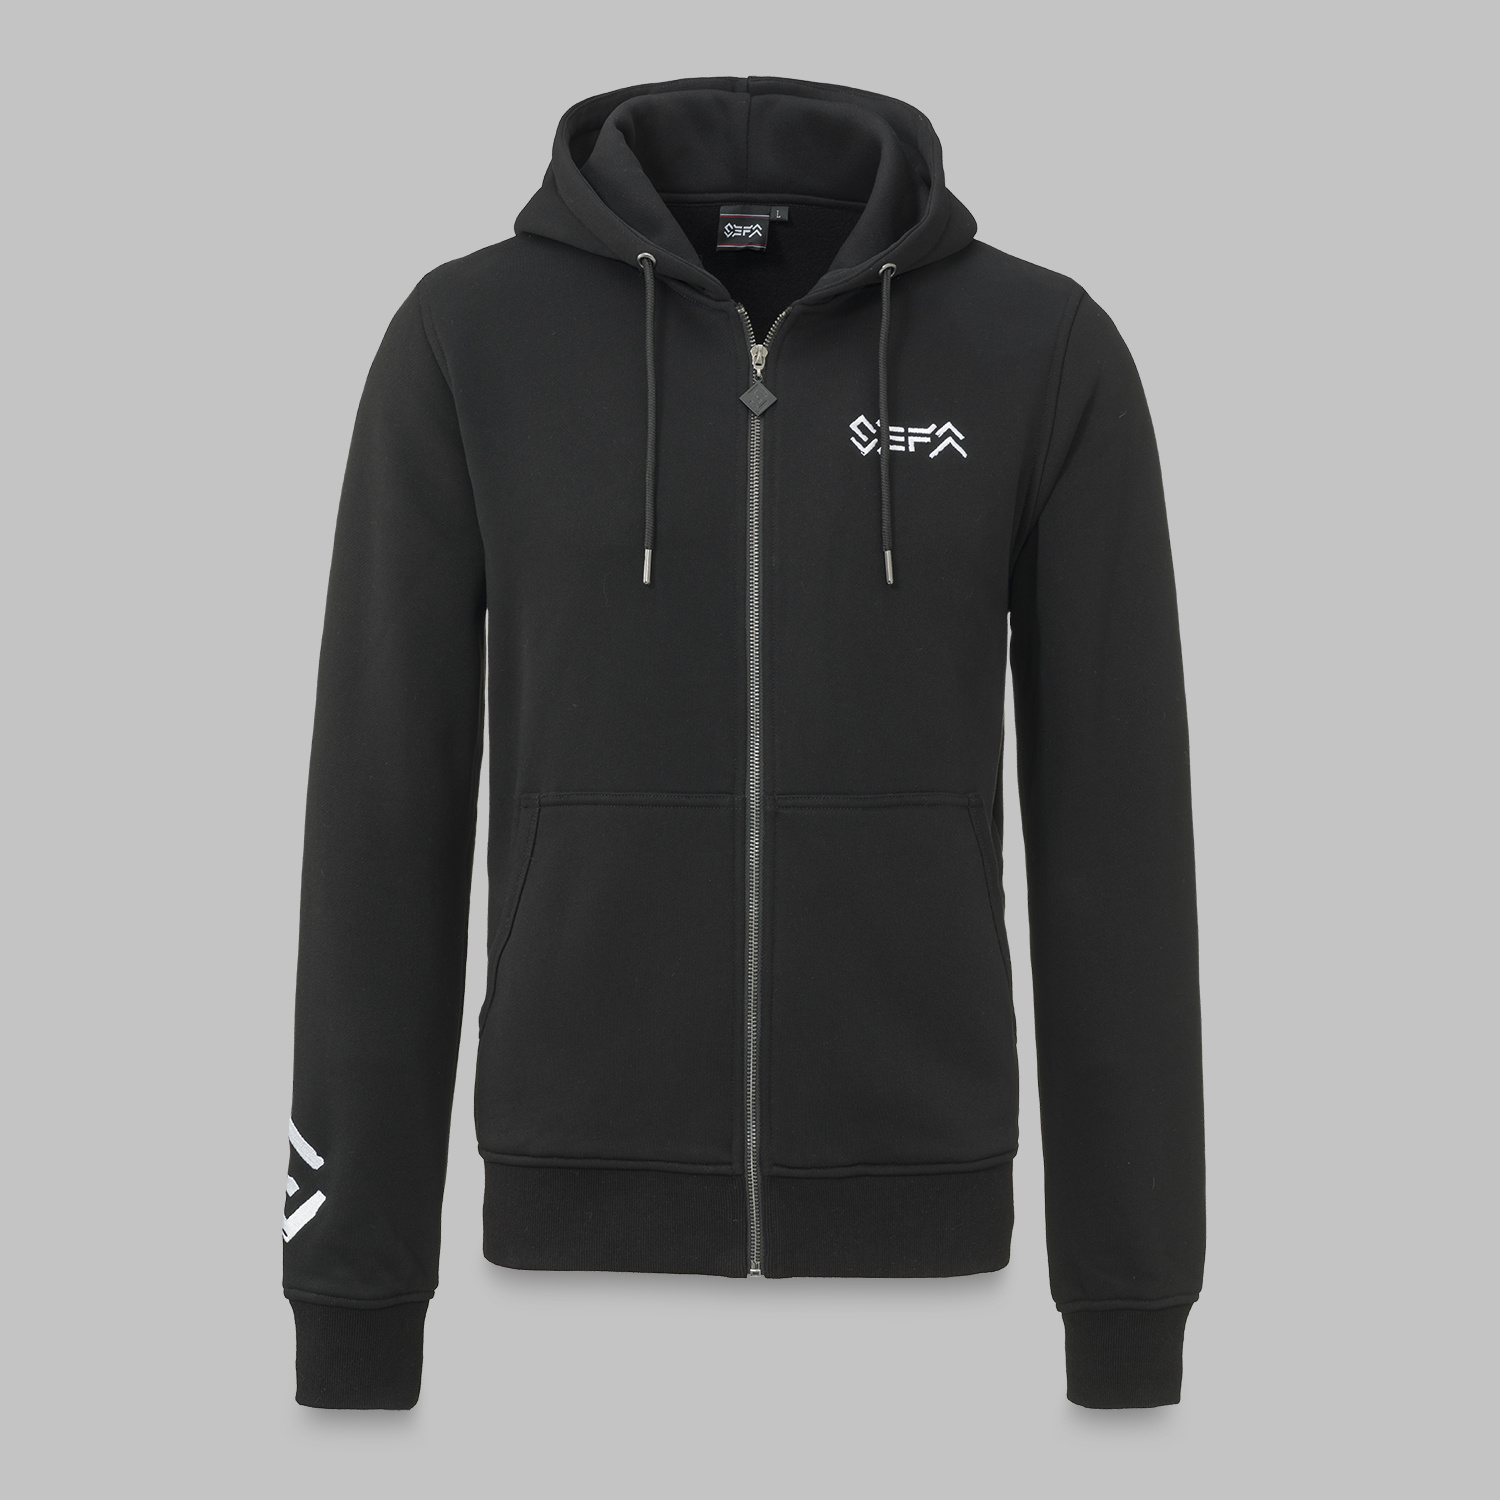 Sefa hooded zip black/white-2